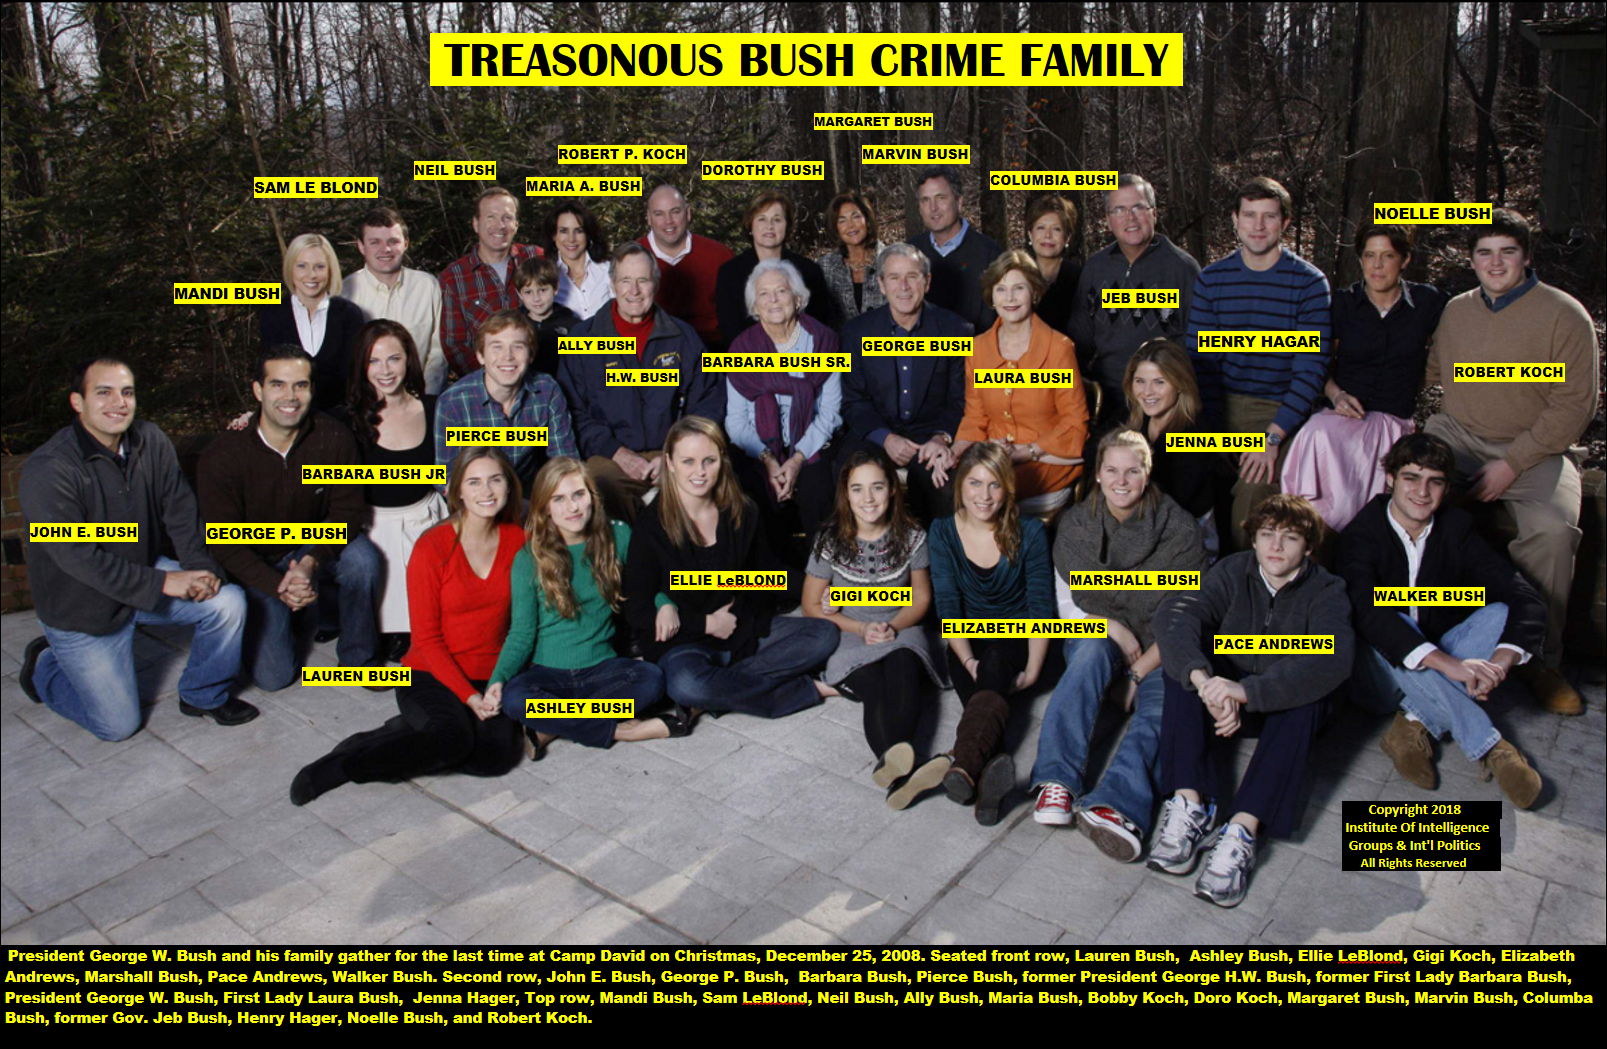 Treasonious Bush Family